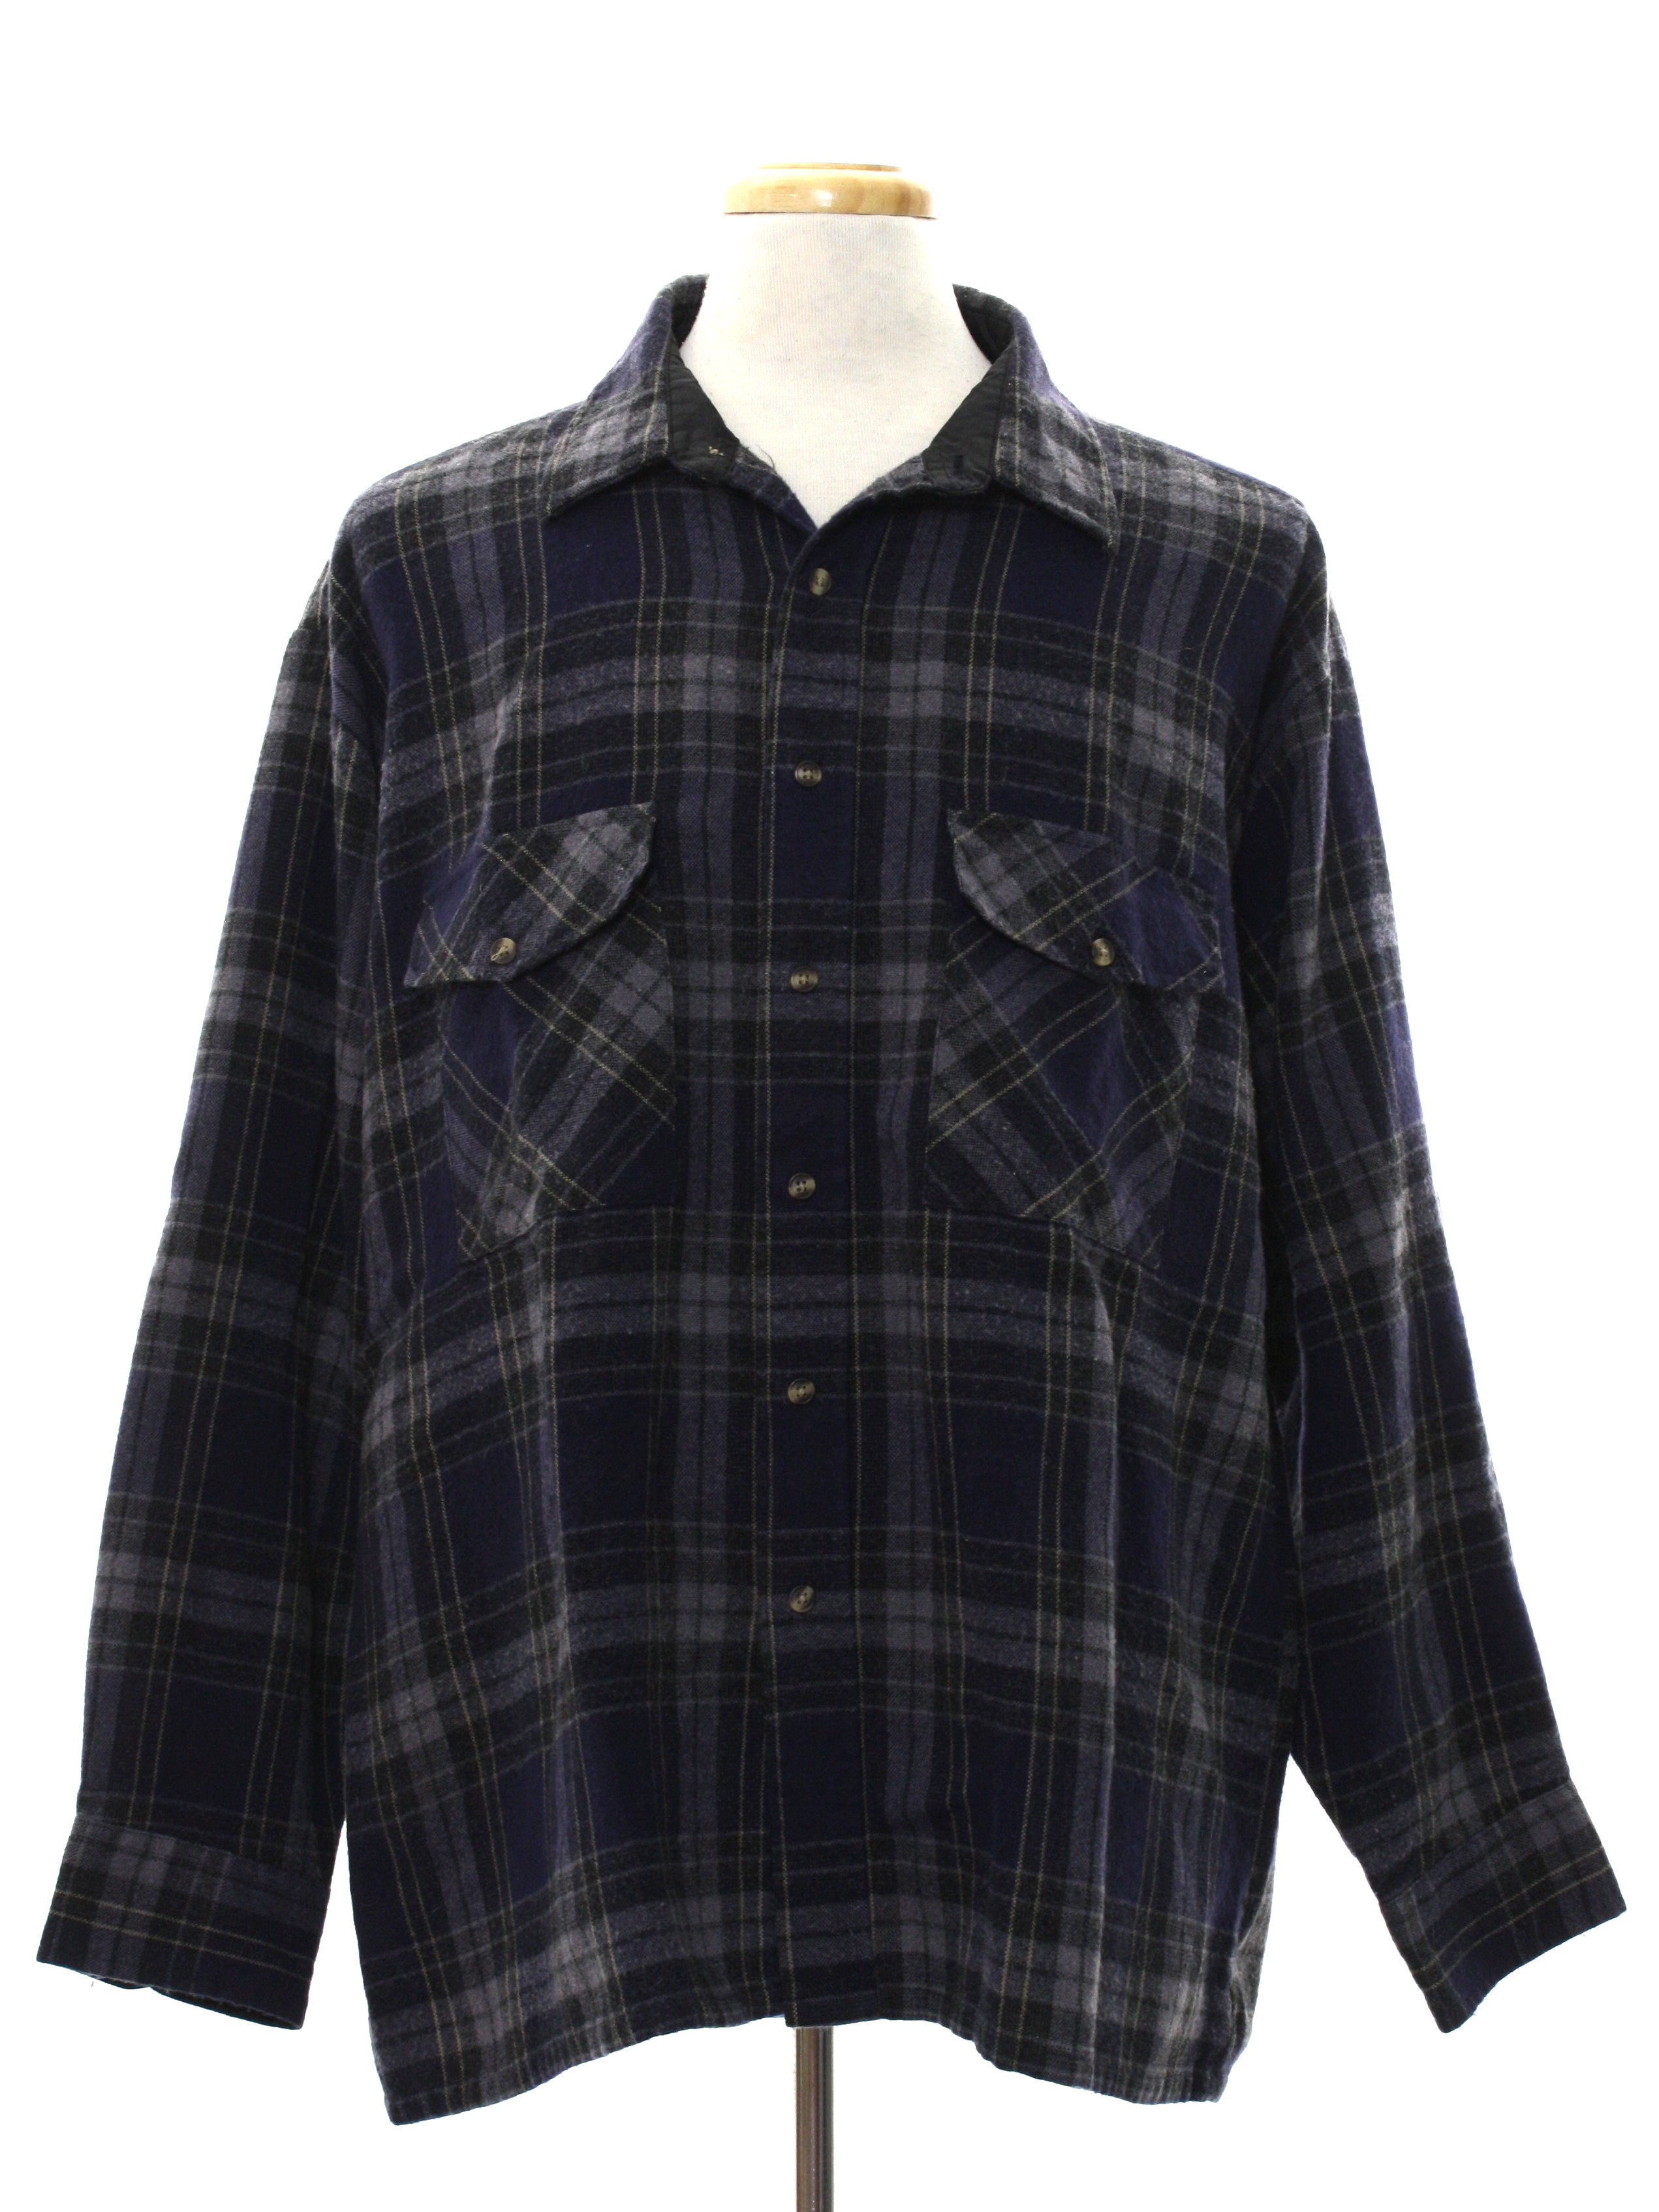 80 39 s vintage shirt late 80s or early 90s consensus for Polyester lined flannel shirts